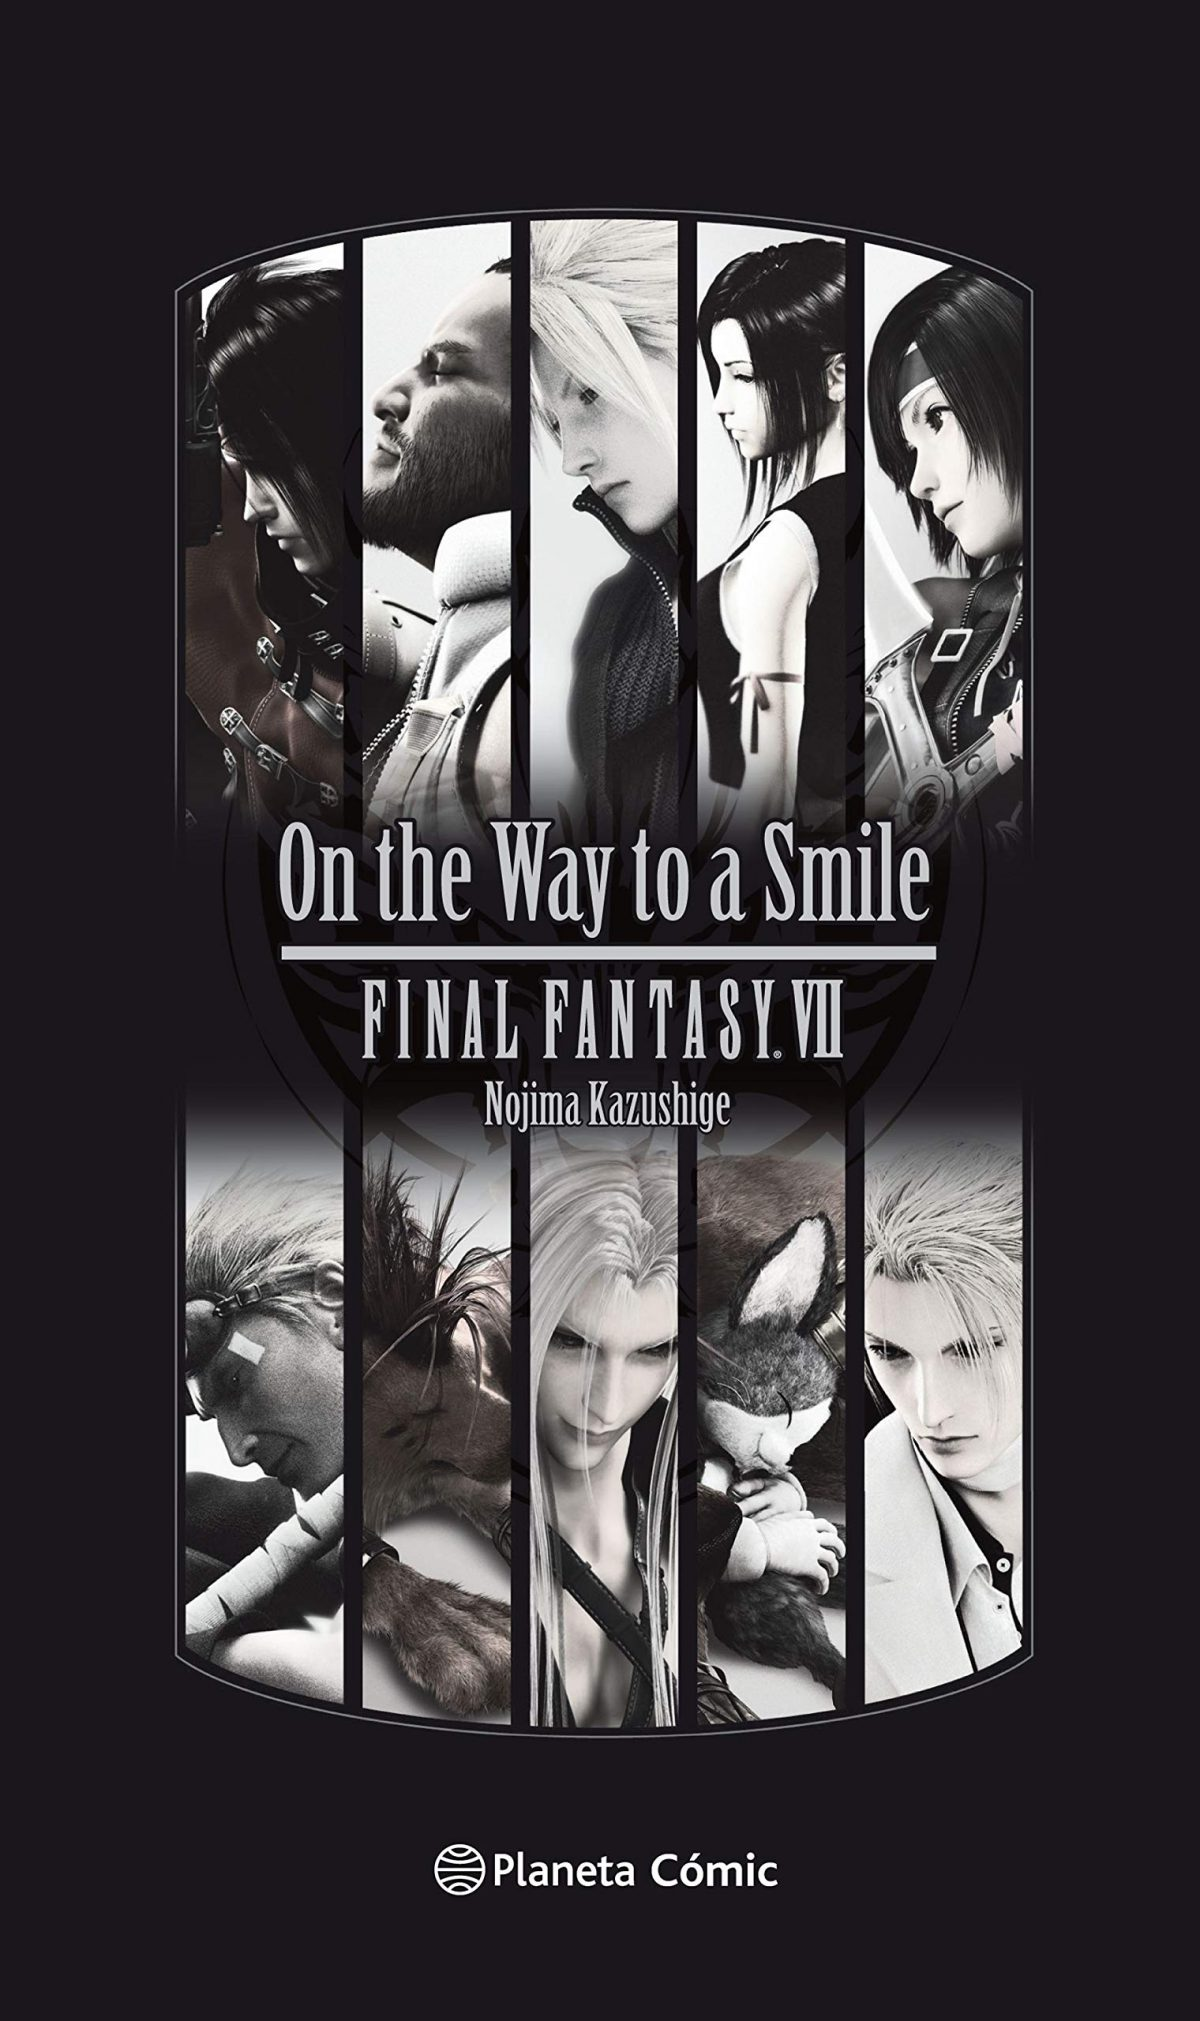 ▷ FINAL FANTASY VII: On the Way to a Smile | La inovela de FFVII ✅